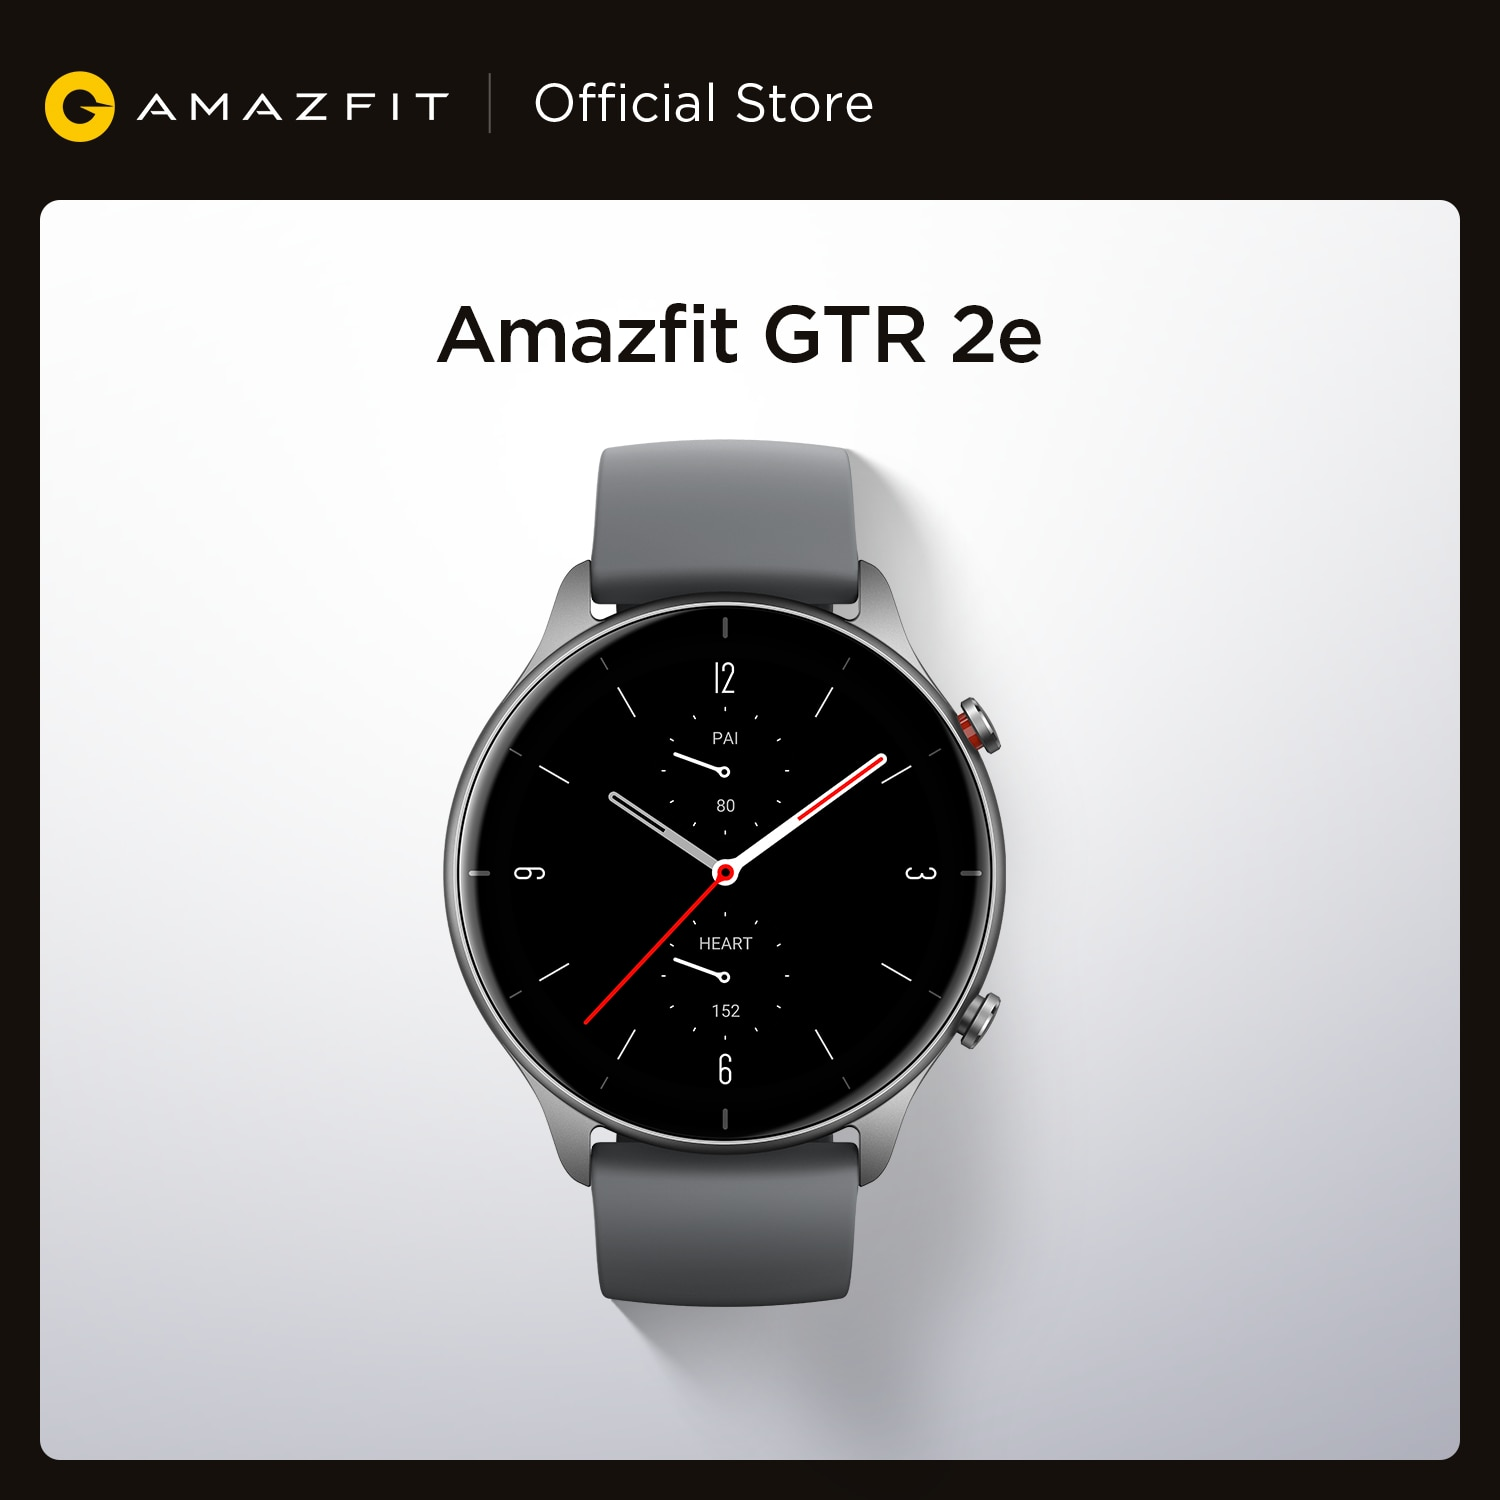 2021 Global Version Amazfit GTR 2e Smartwatch 471 mAh 5 ATM Answer Call Fitness Tracking Smart Watch for Andriod for IOS